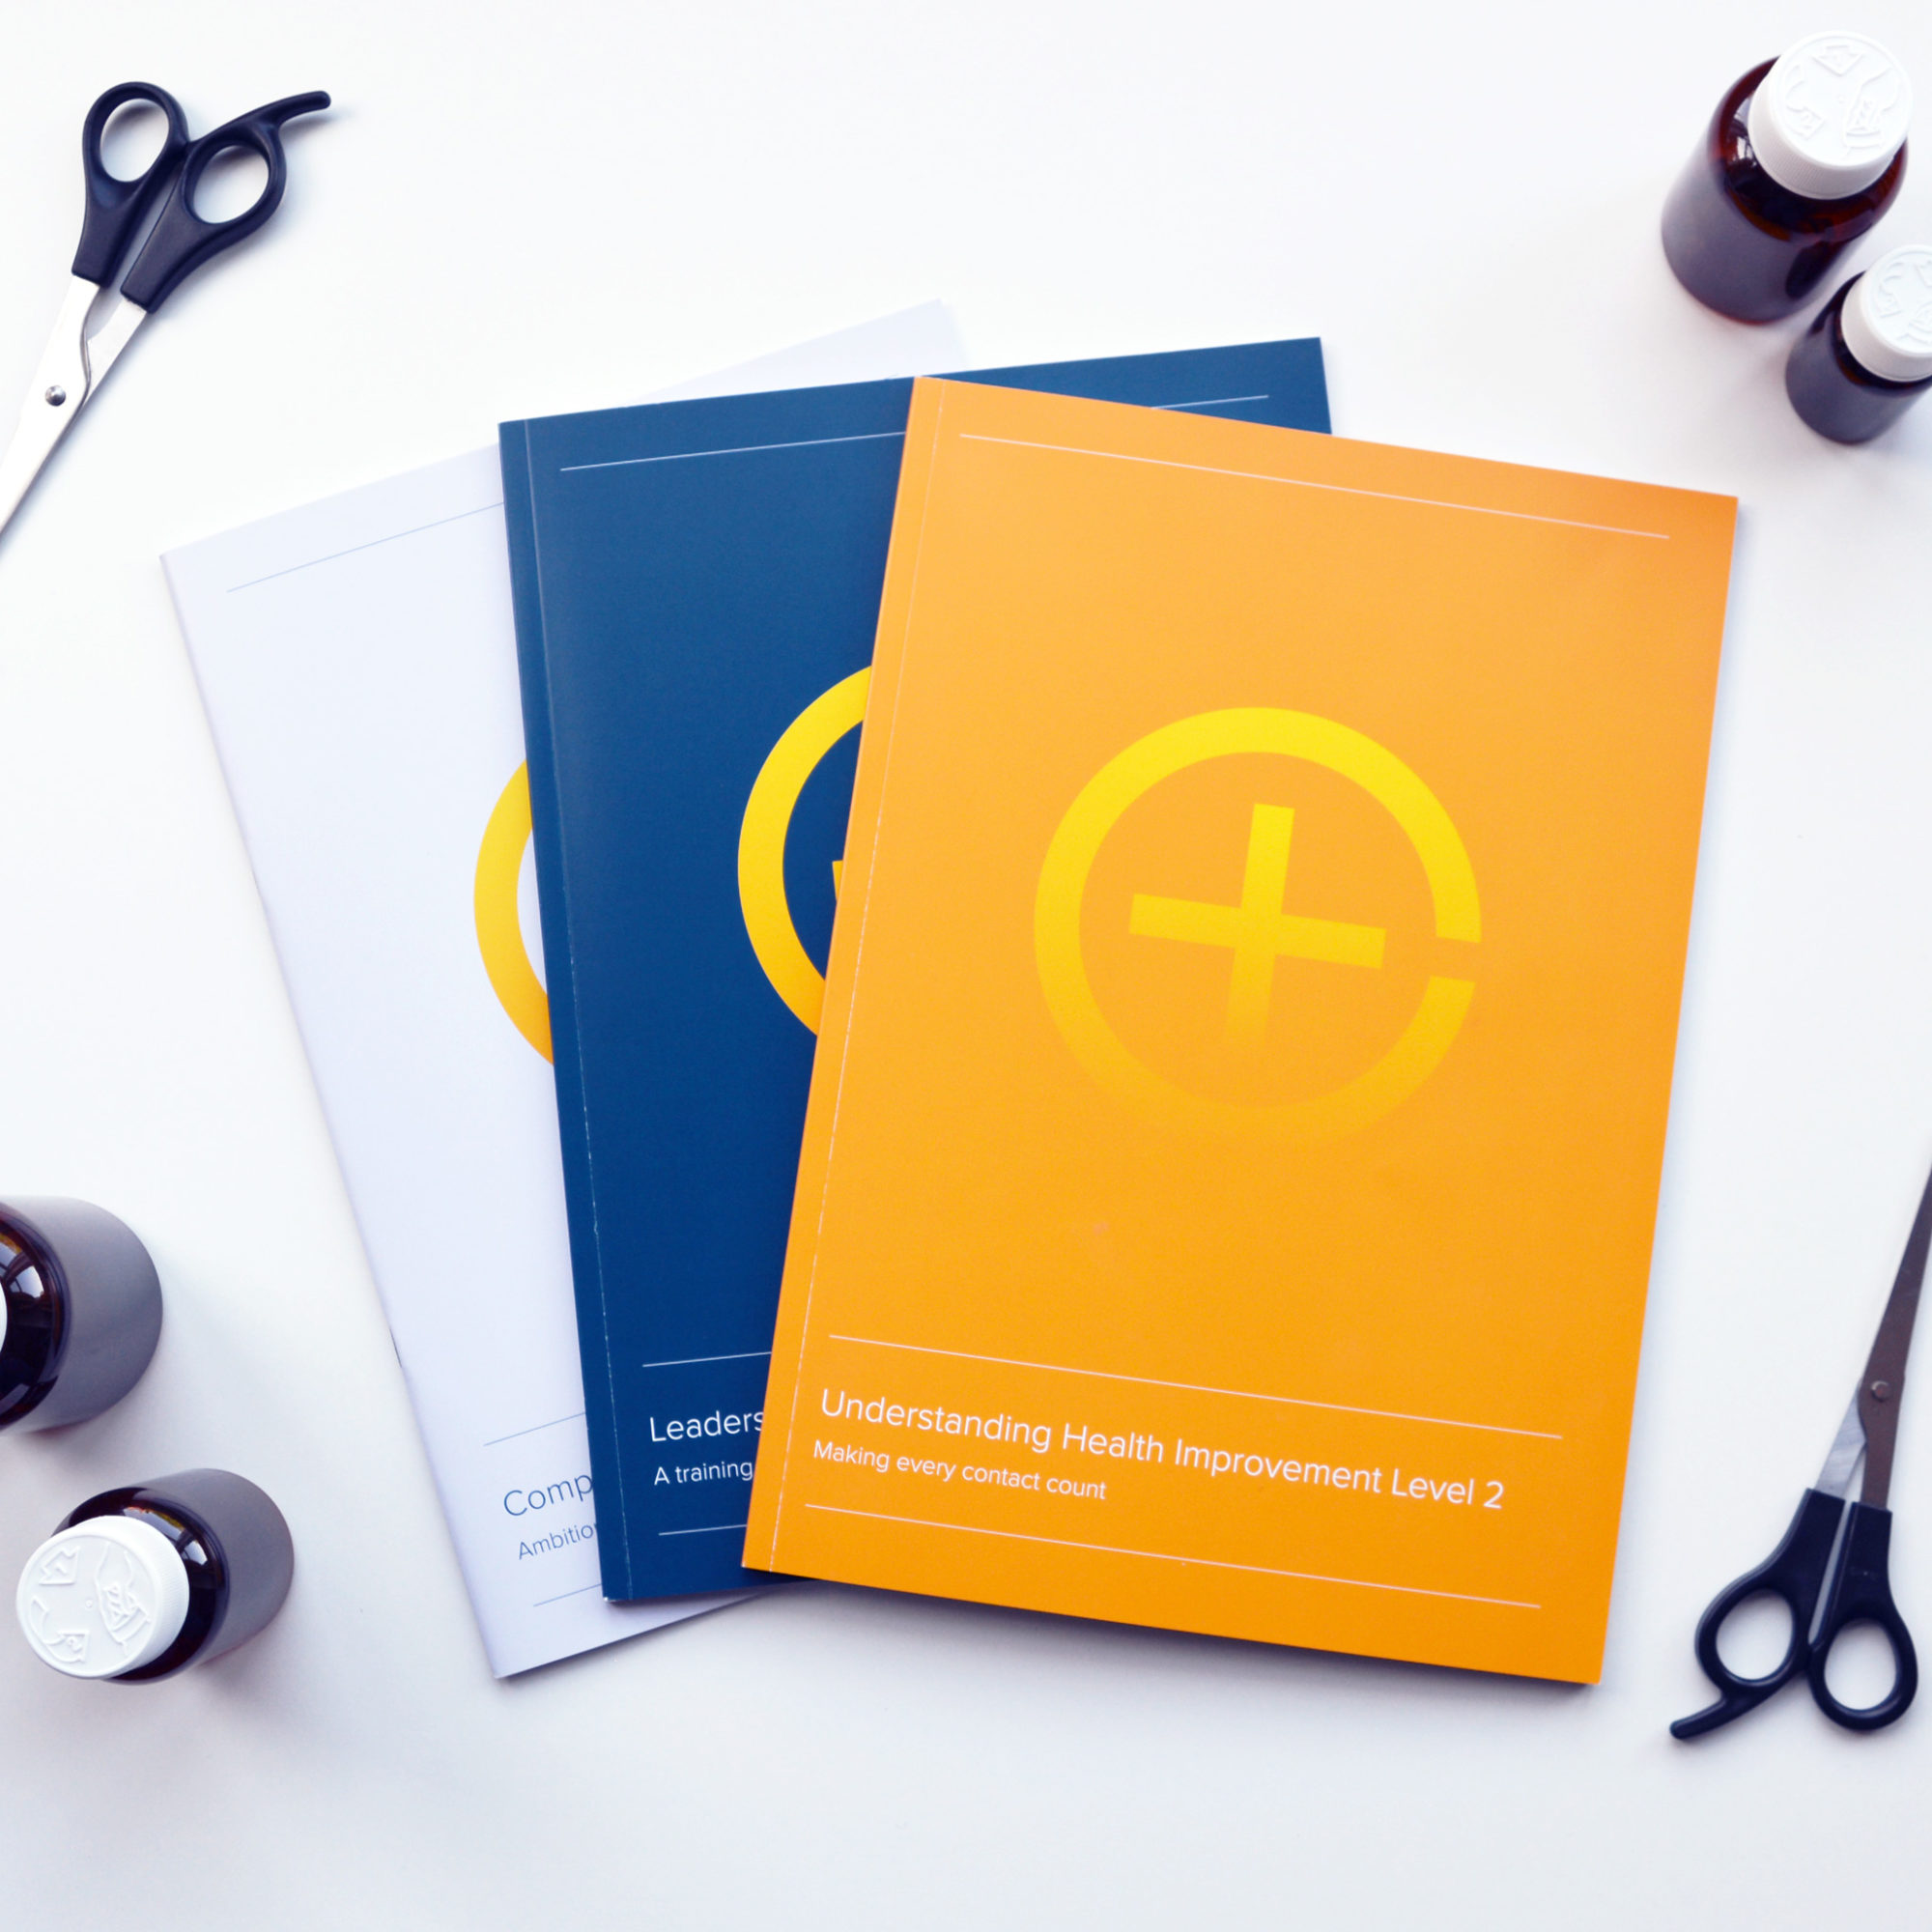 DOSE Design and Marketing Pharmacy Complete Training Materials